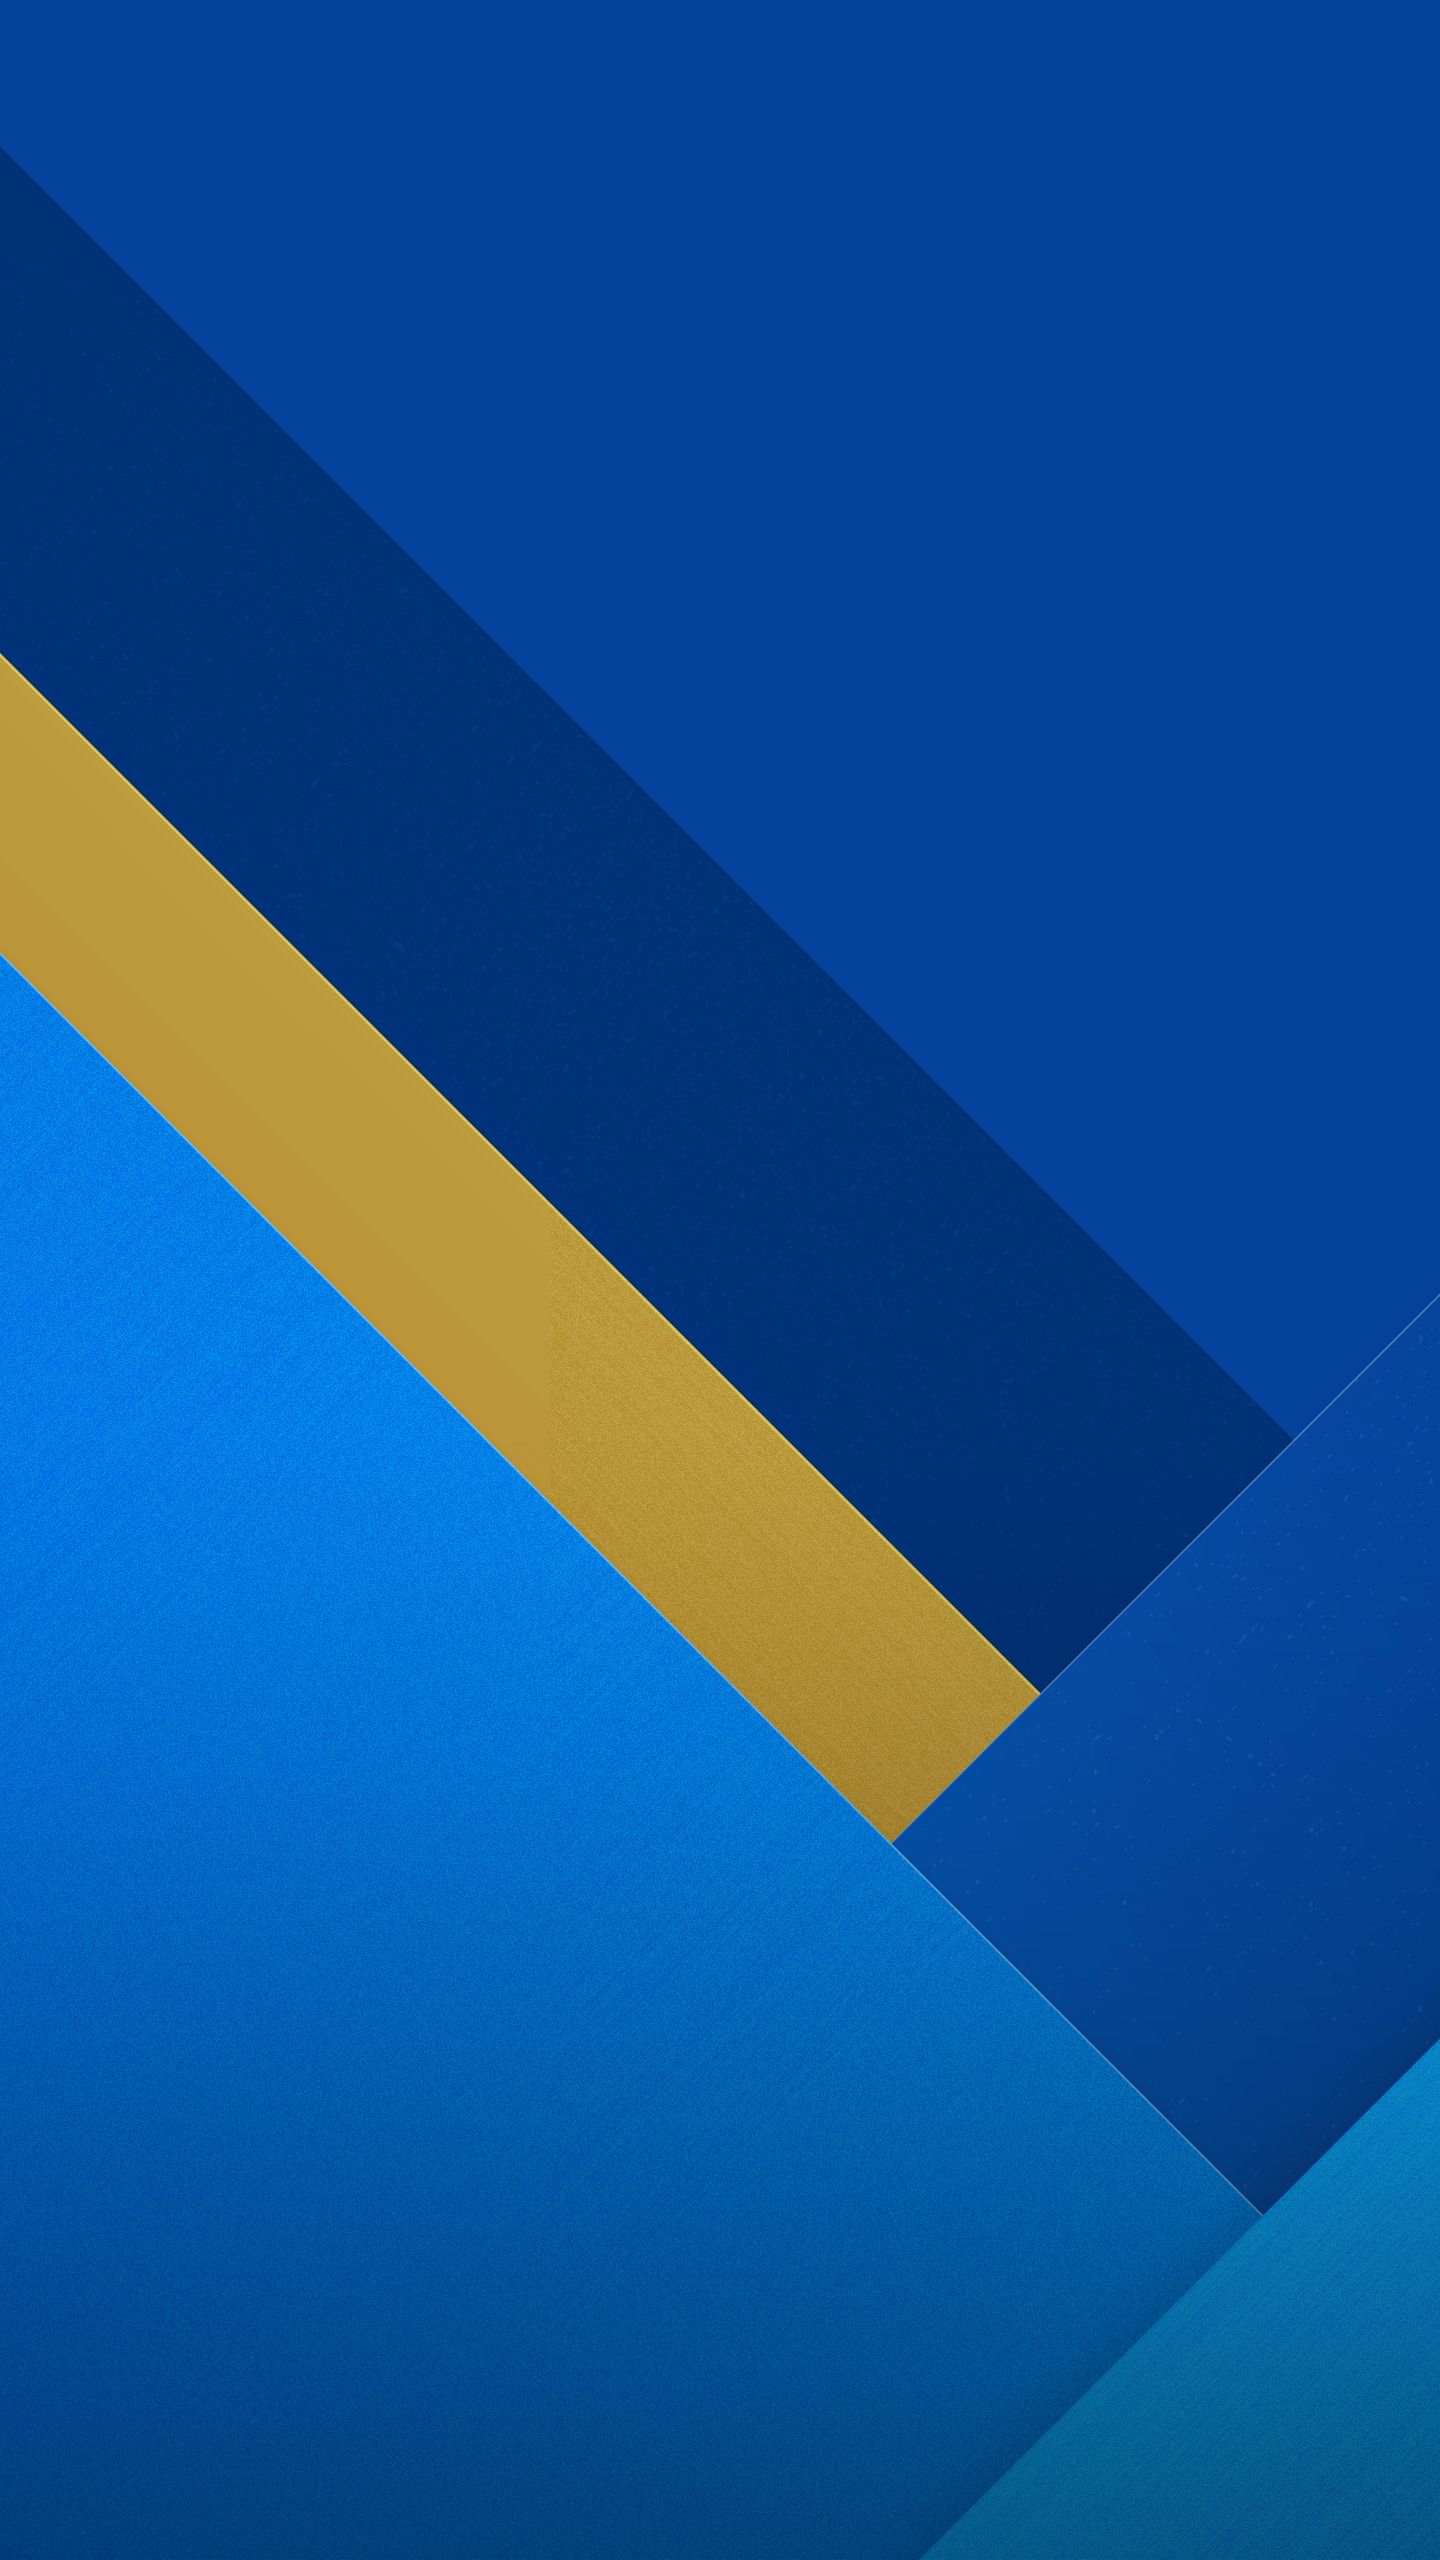 diagonal lines 3 for samsung galaxy s7 and edge wallpaper | hd